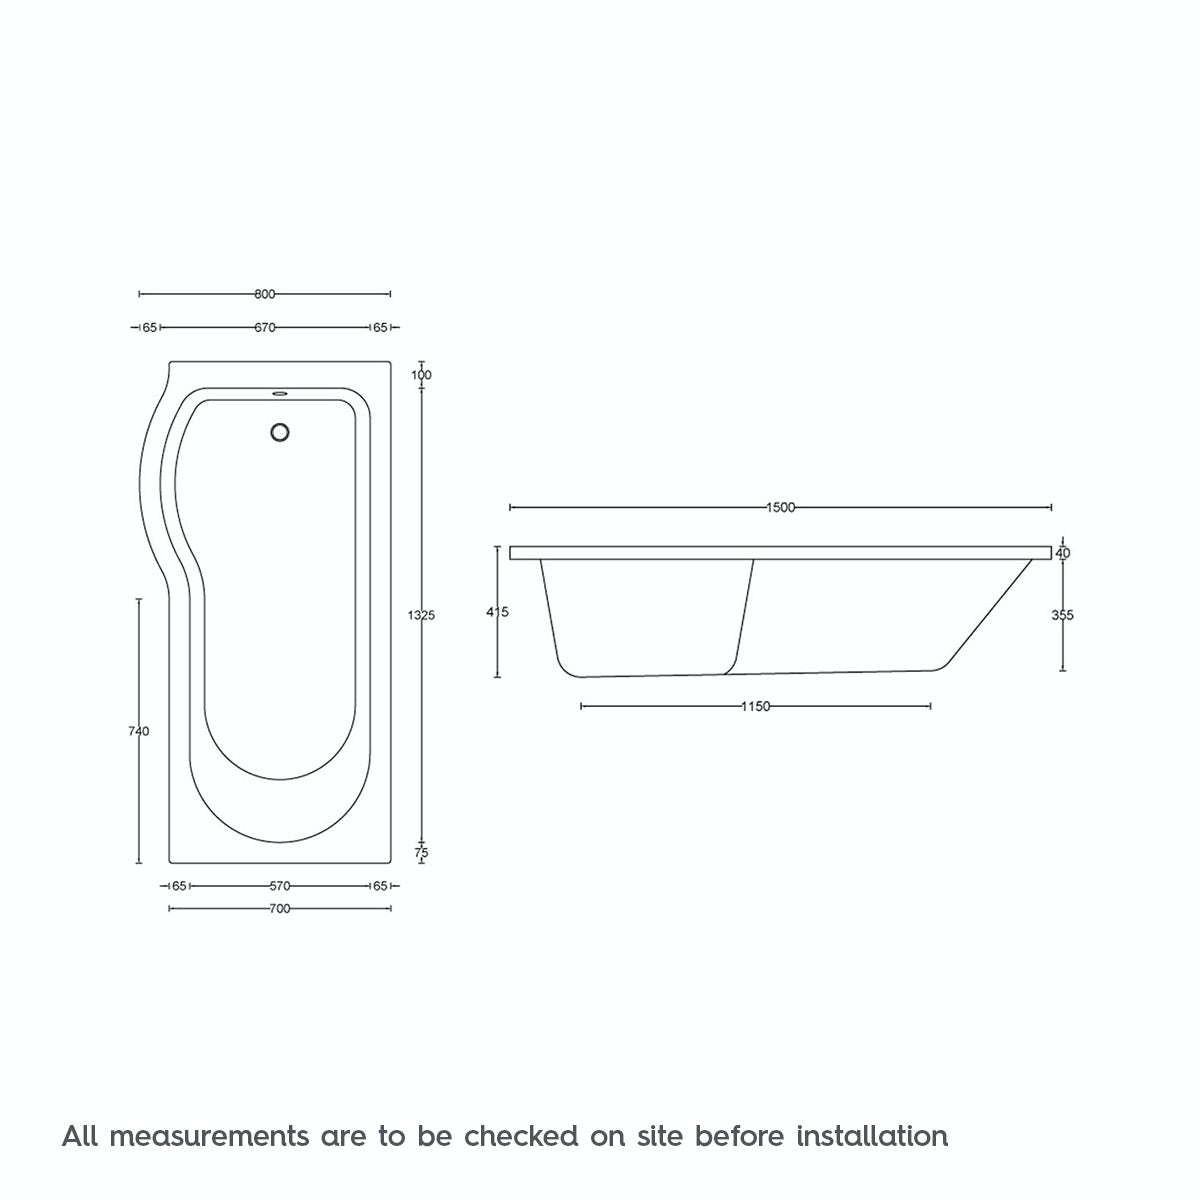 Dimensions for 1500 x 800